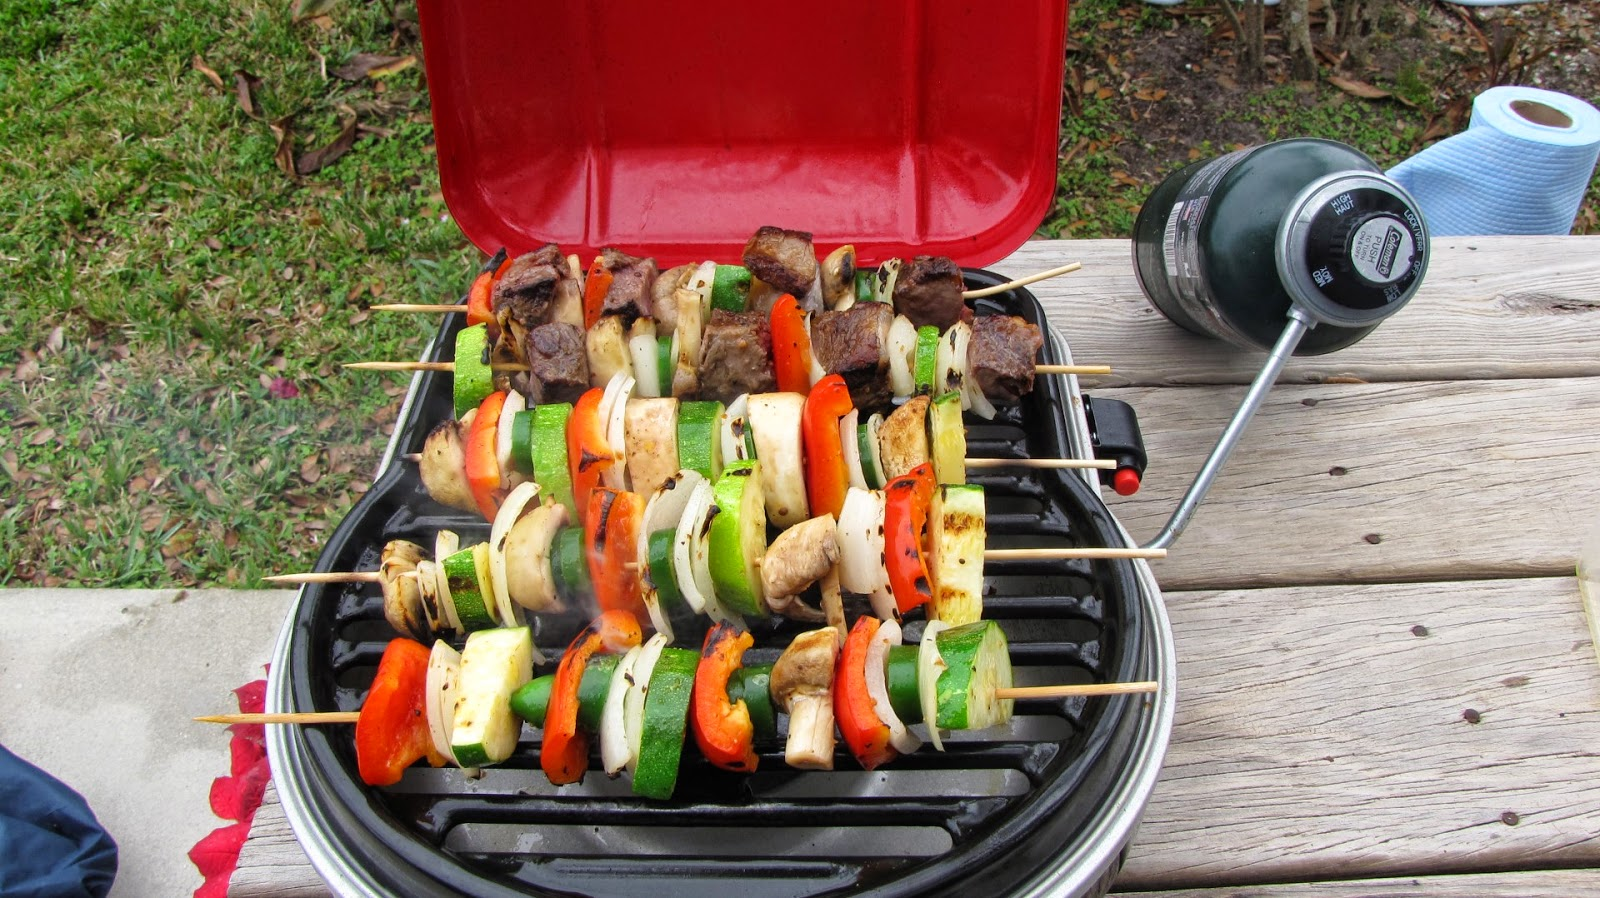 Grilling Vegetable Shish Kebabs